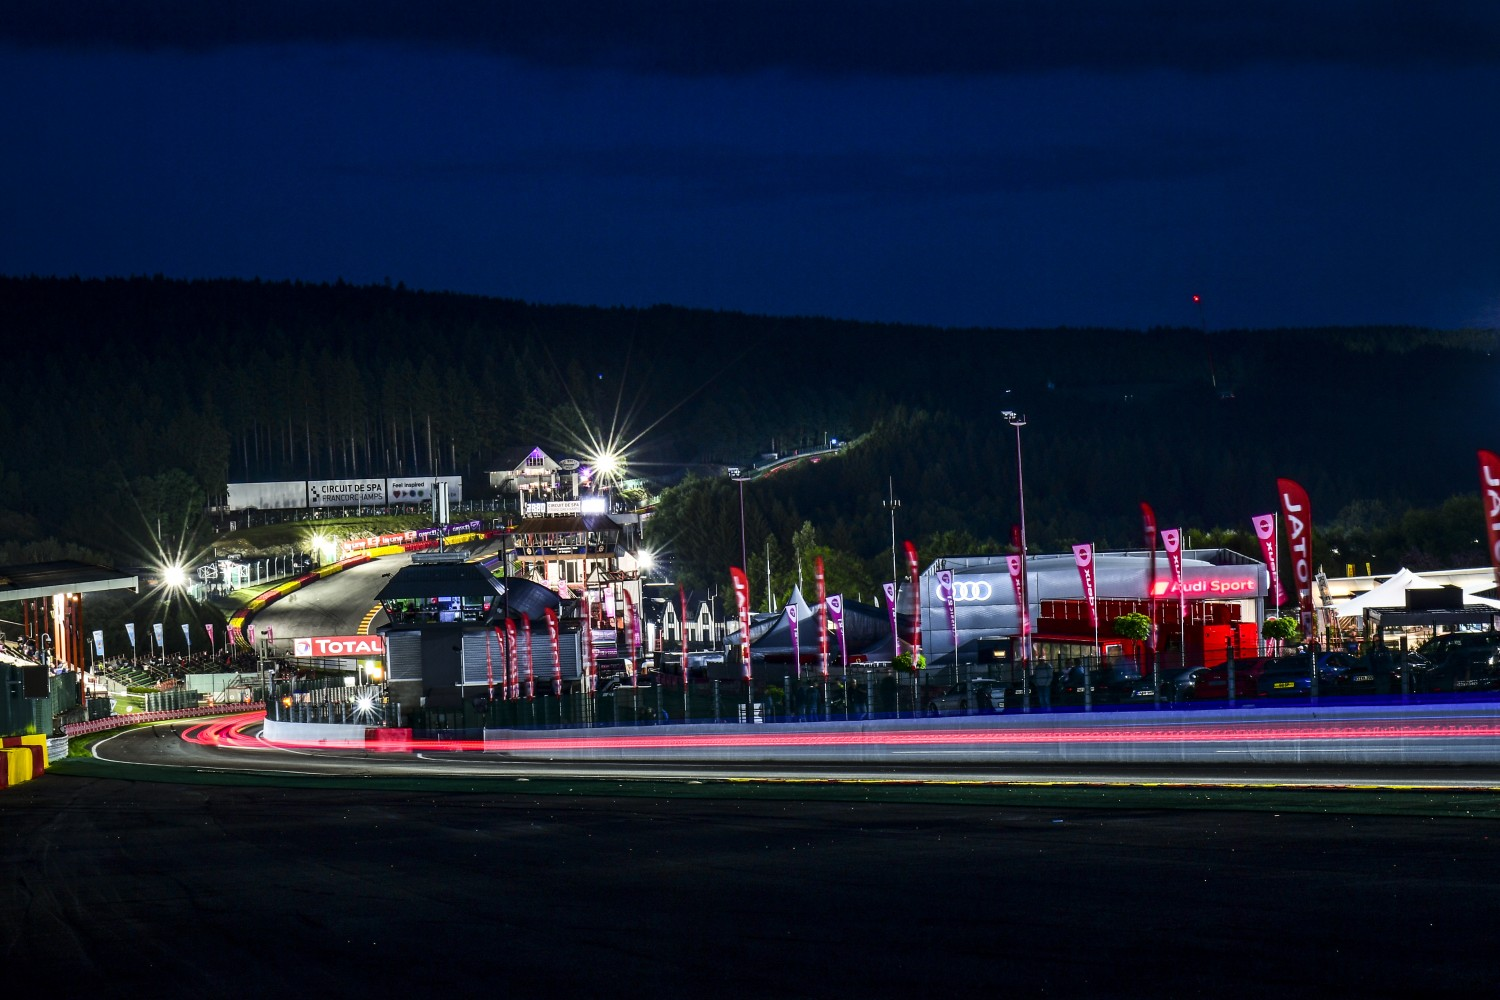 Class glory on the line at Total 24 Hours of Spa